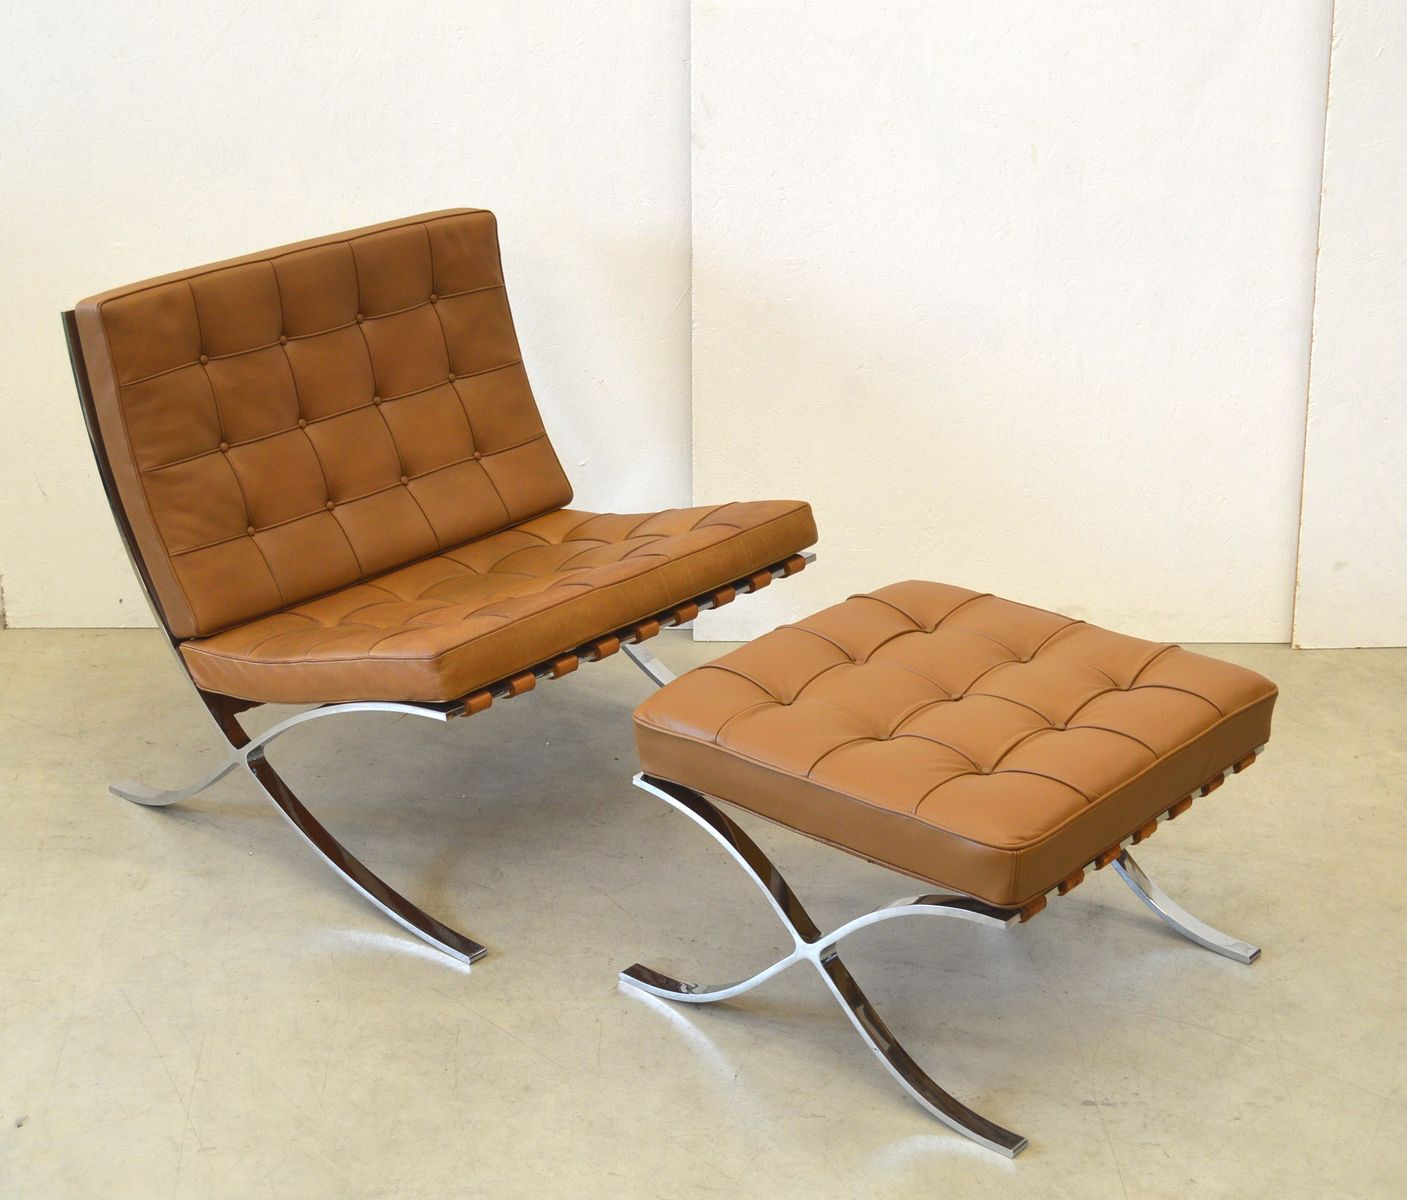 Vintage barcelona chair ottoman by mies van der rohe for - Mobles vintage barcelona ...